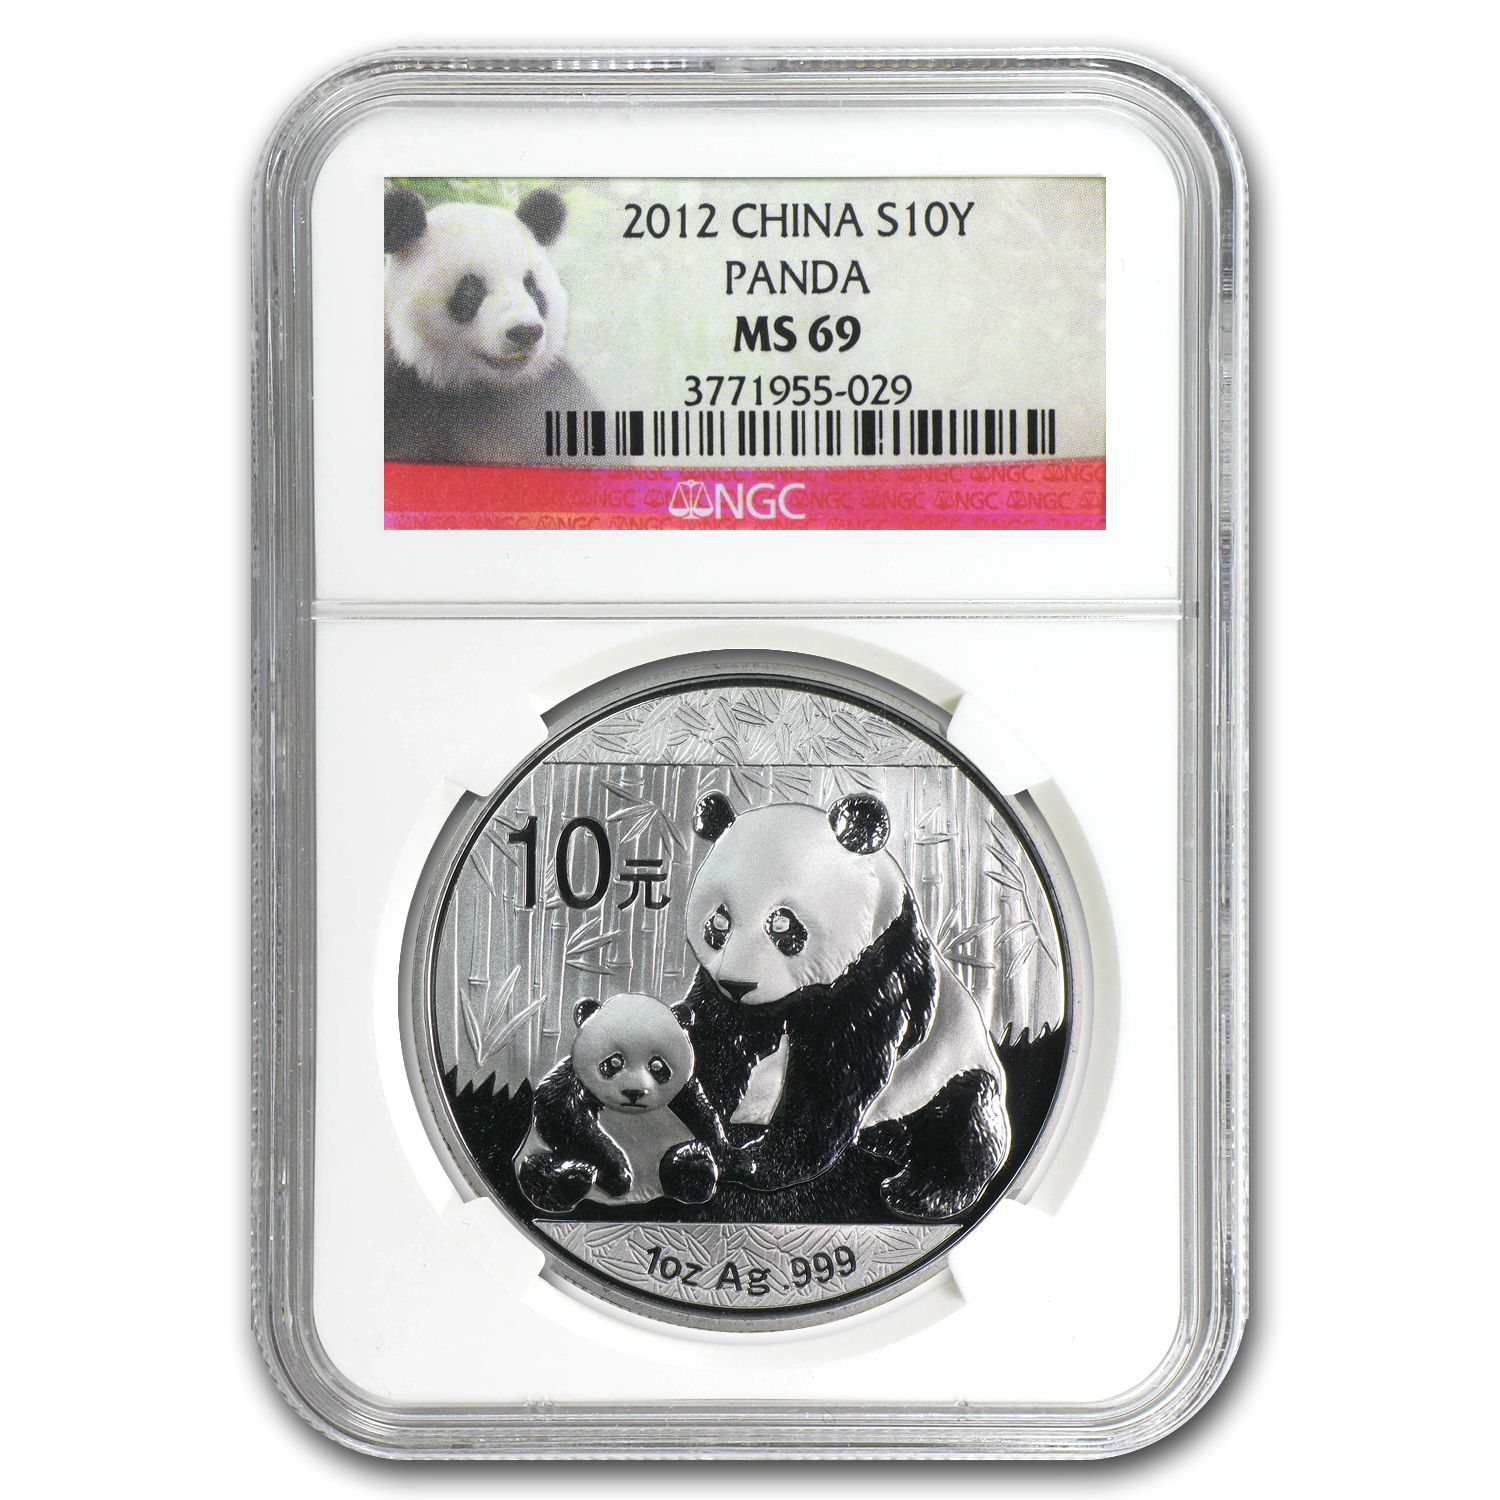 2012 1 oz Silver Chinese Panda MS-69 NGC